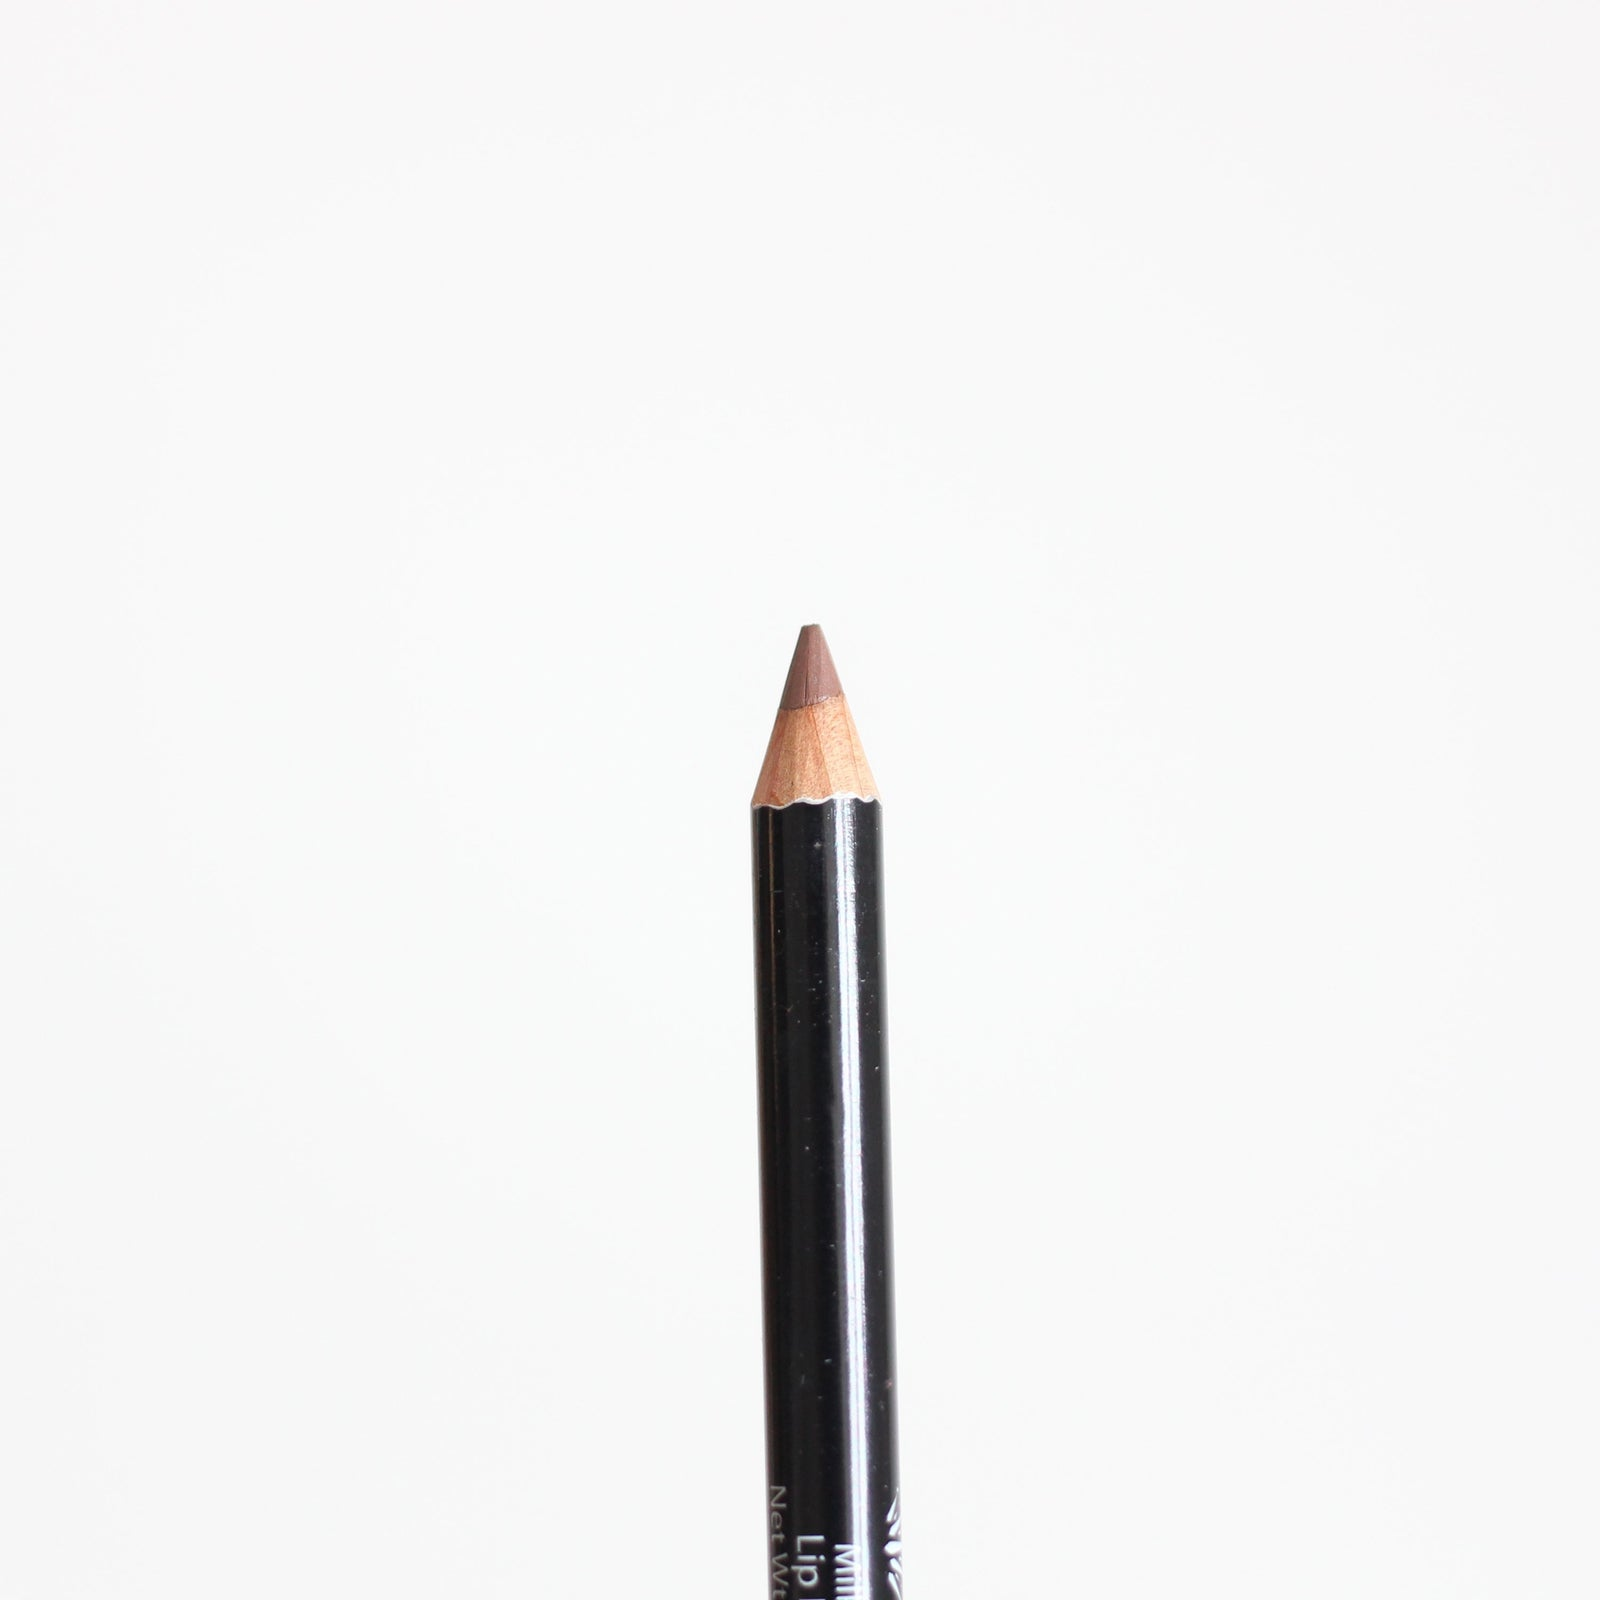 Lip Liner Pencils - Crownbrush